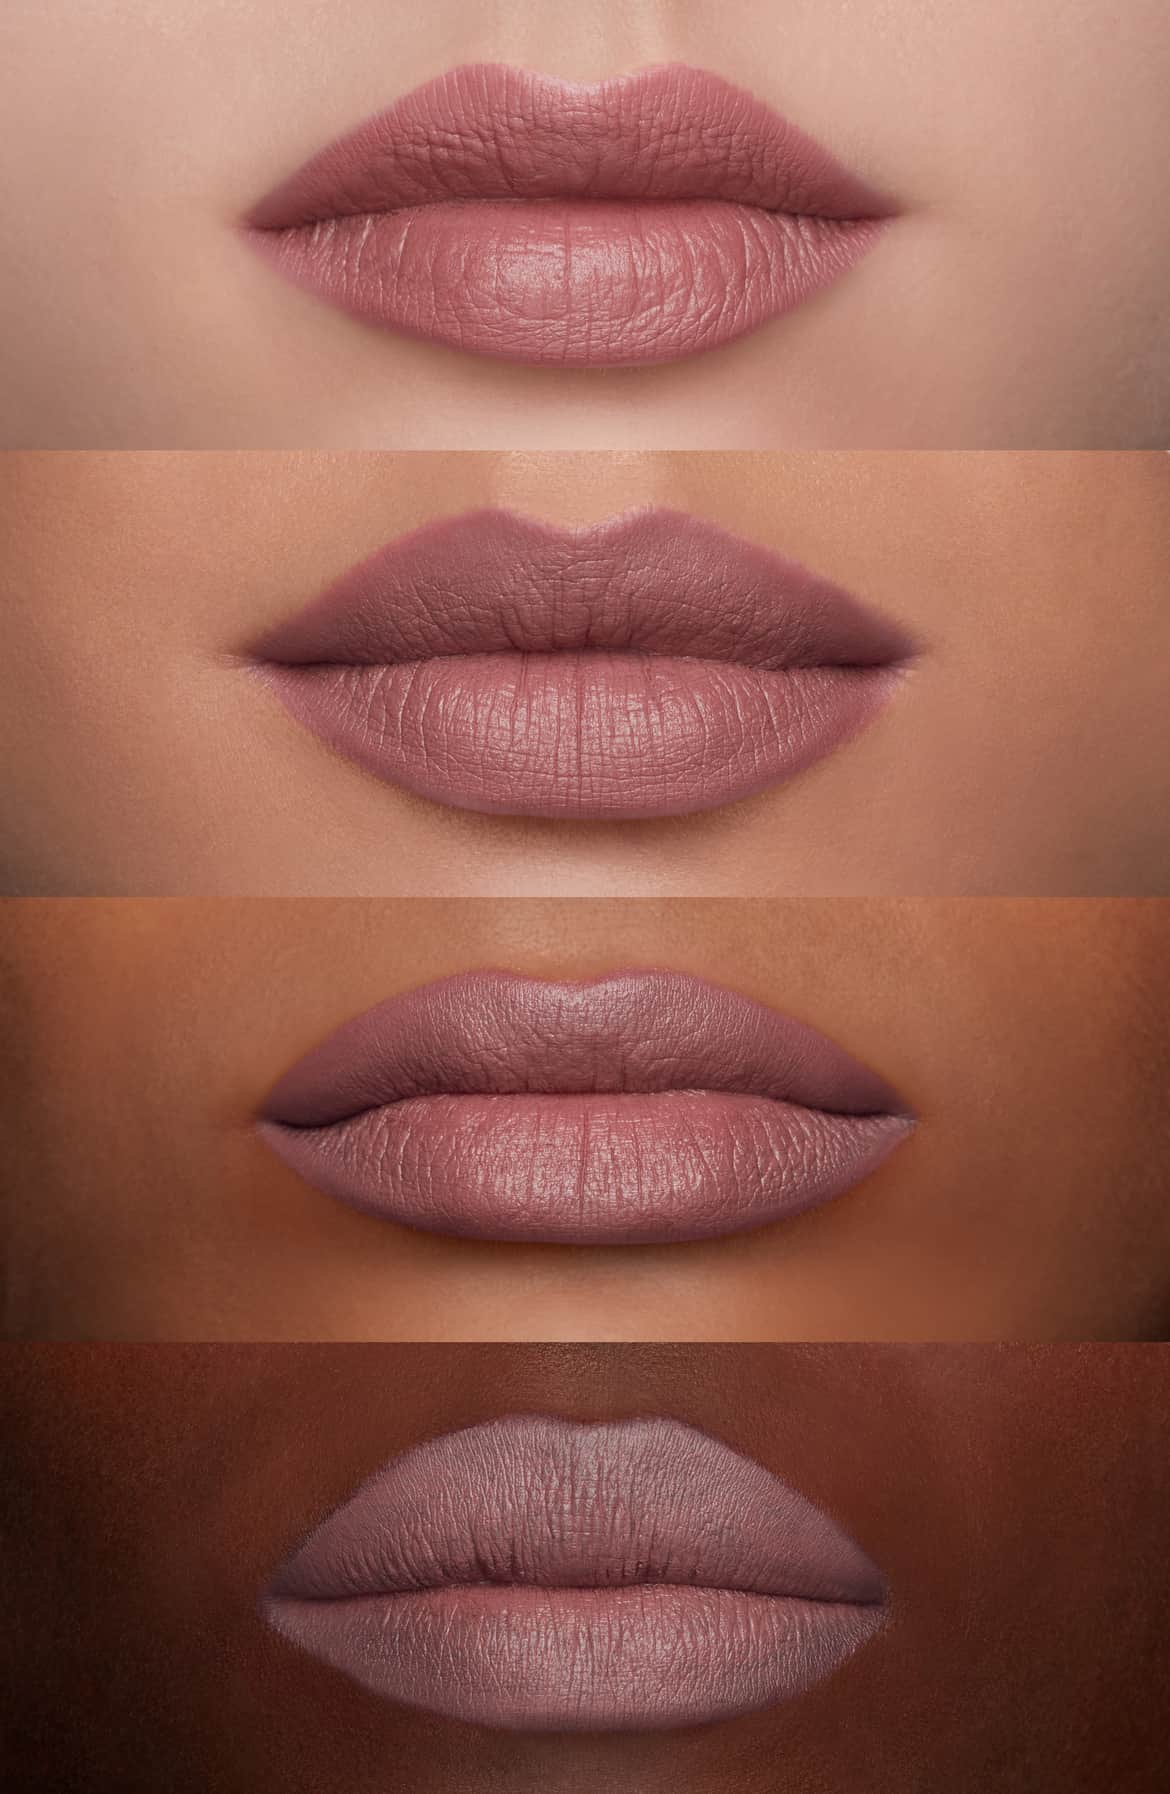 ec1e4feb 92a5 490d b765 7b678a86d7bb - How to Find a Lipstick to Look Amazing on You